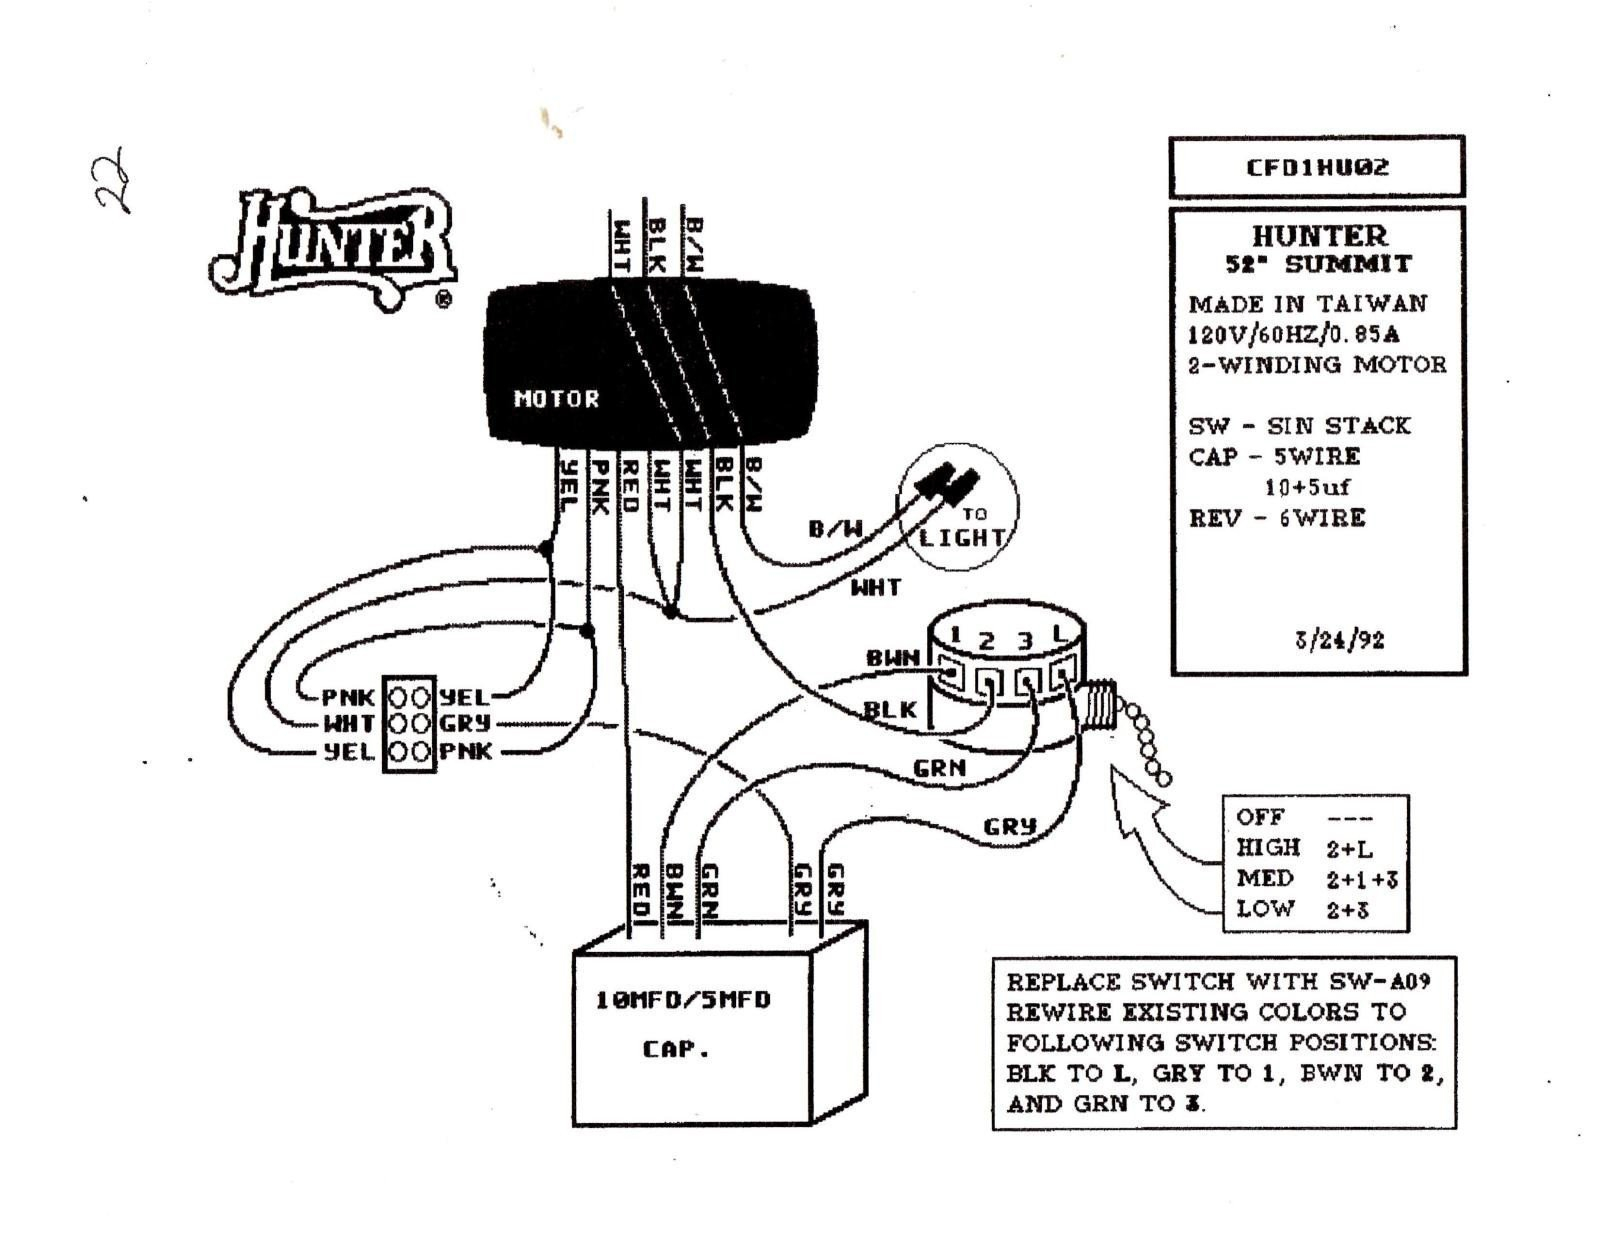 westinghouse 3 speed fan switch wiring diagram download